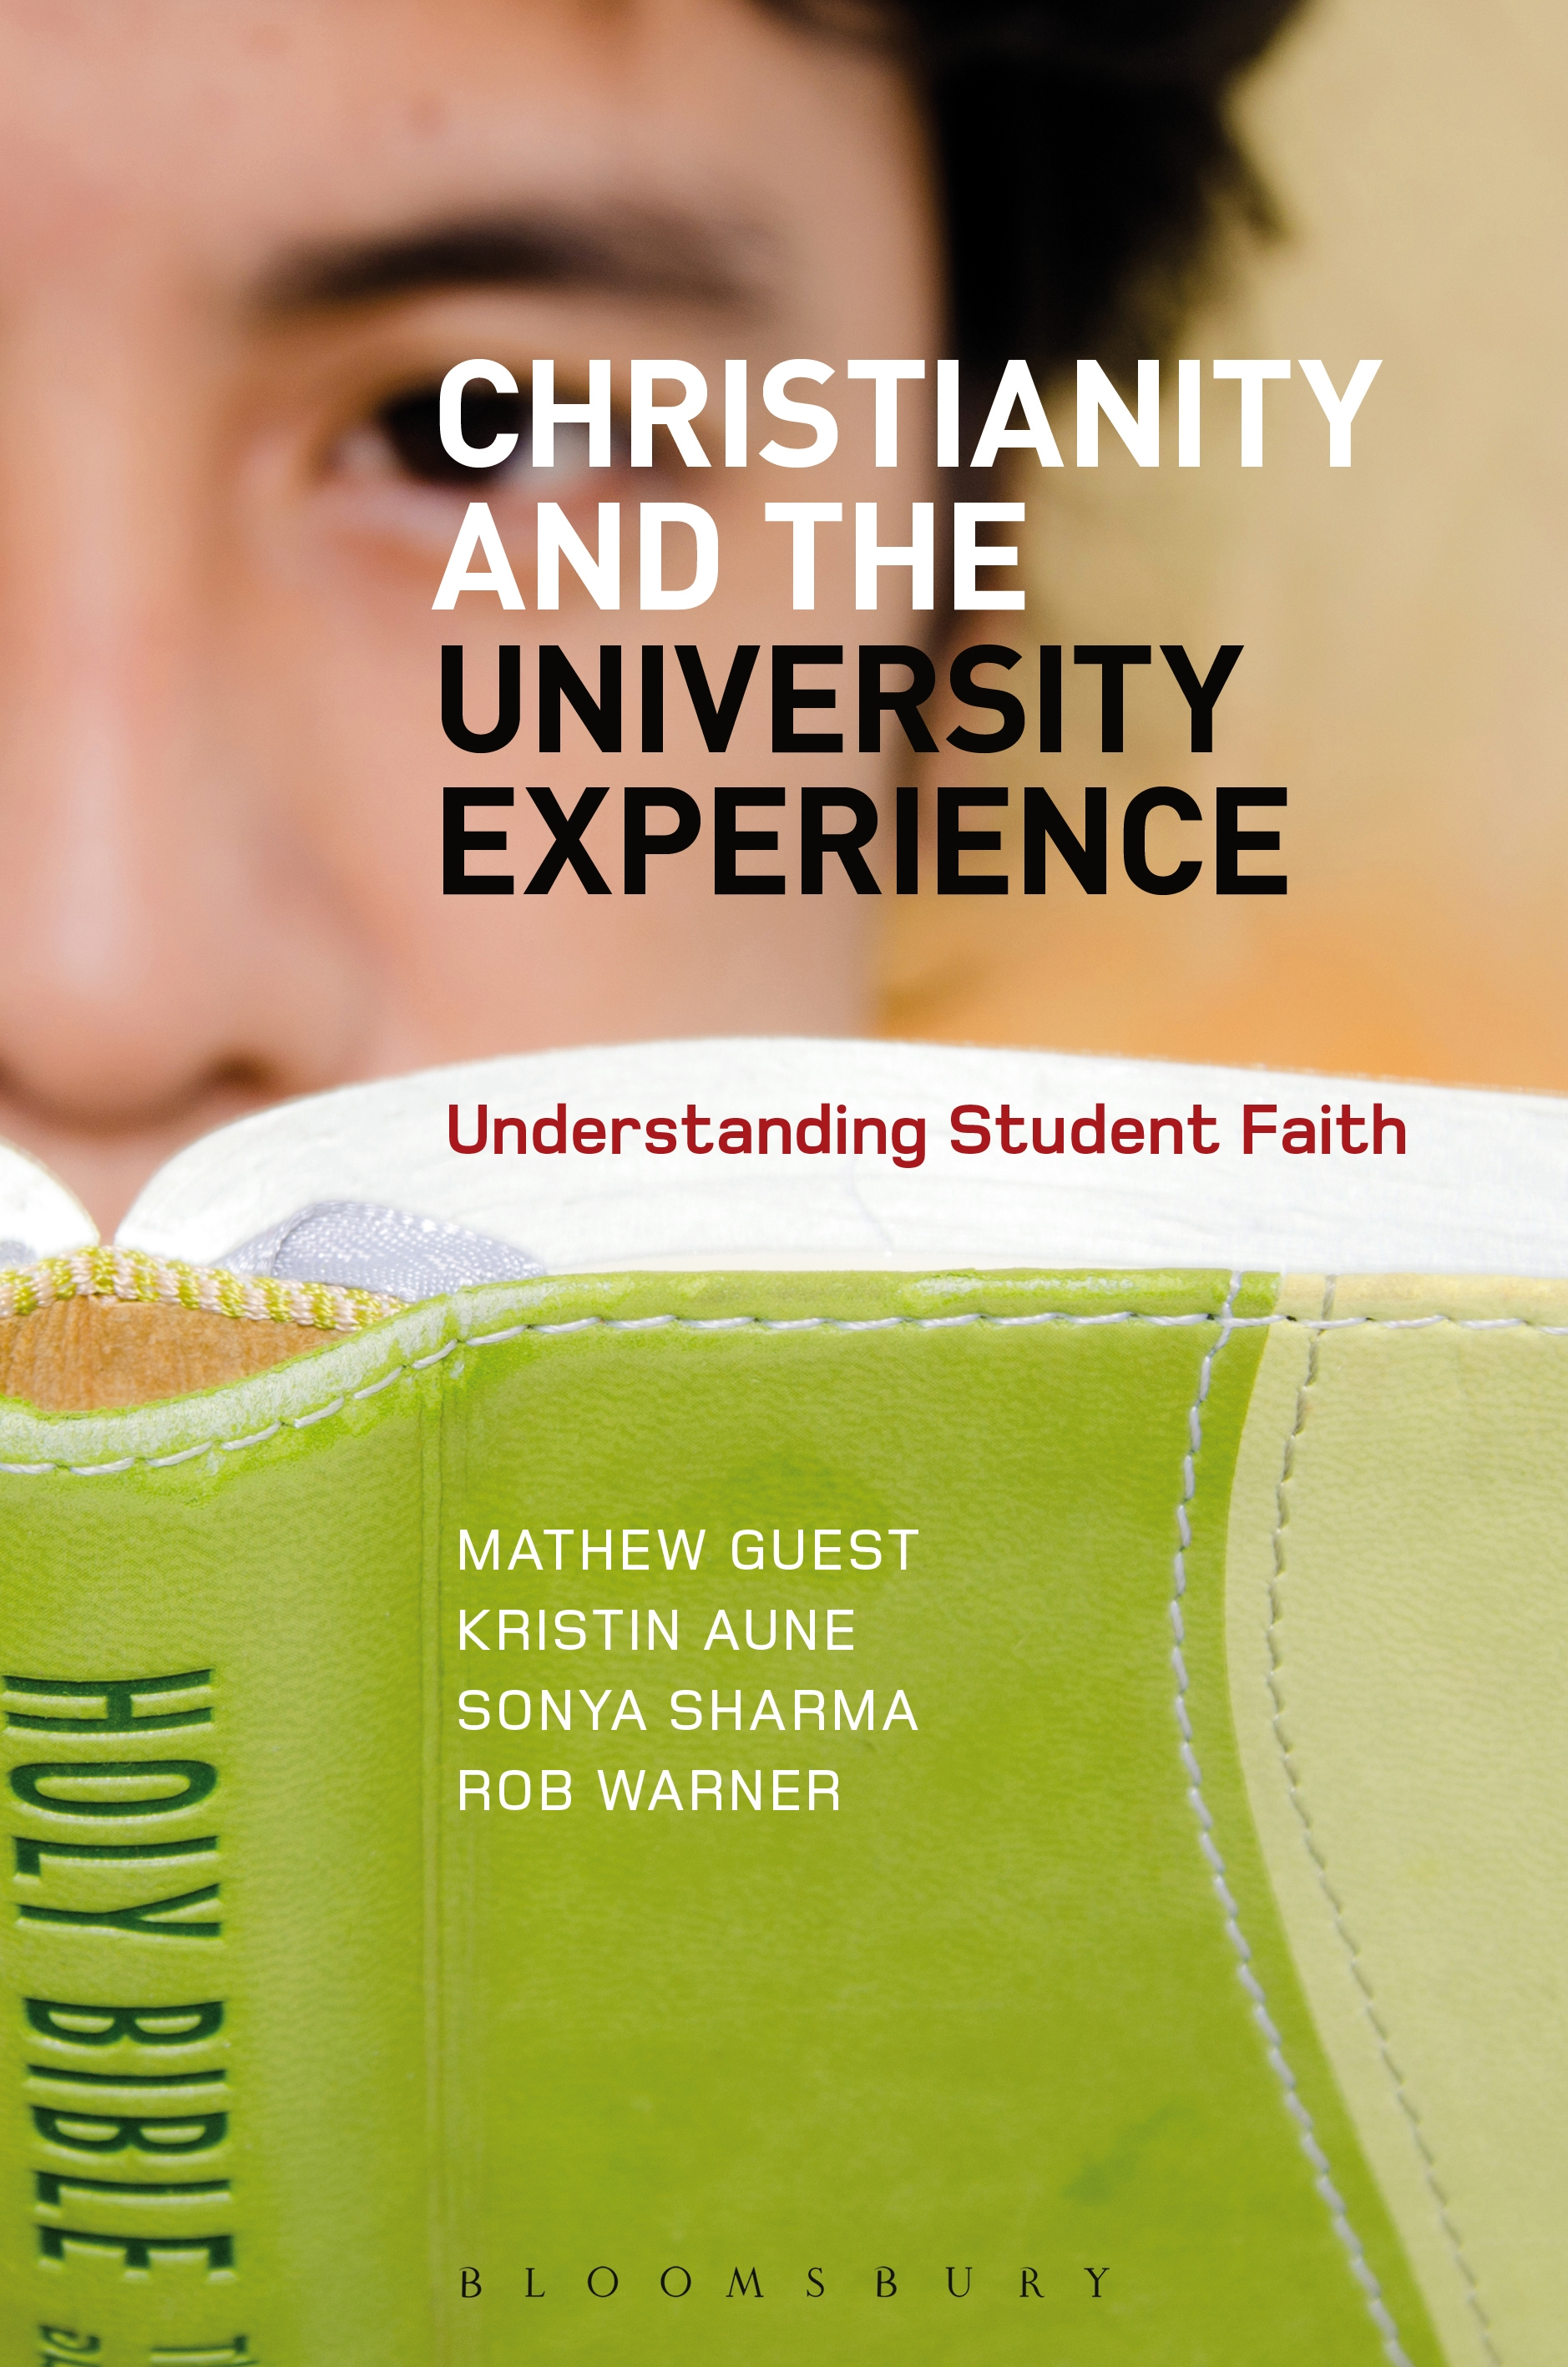 Christianity and the University Experience Understanding Student Faith